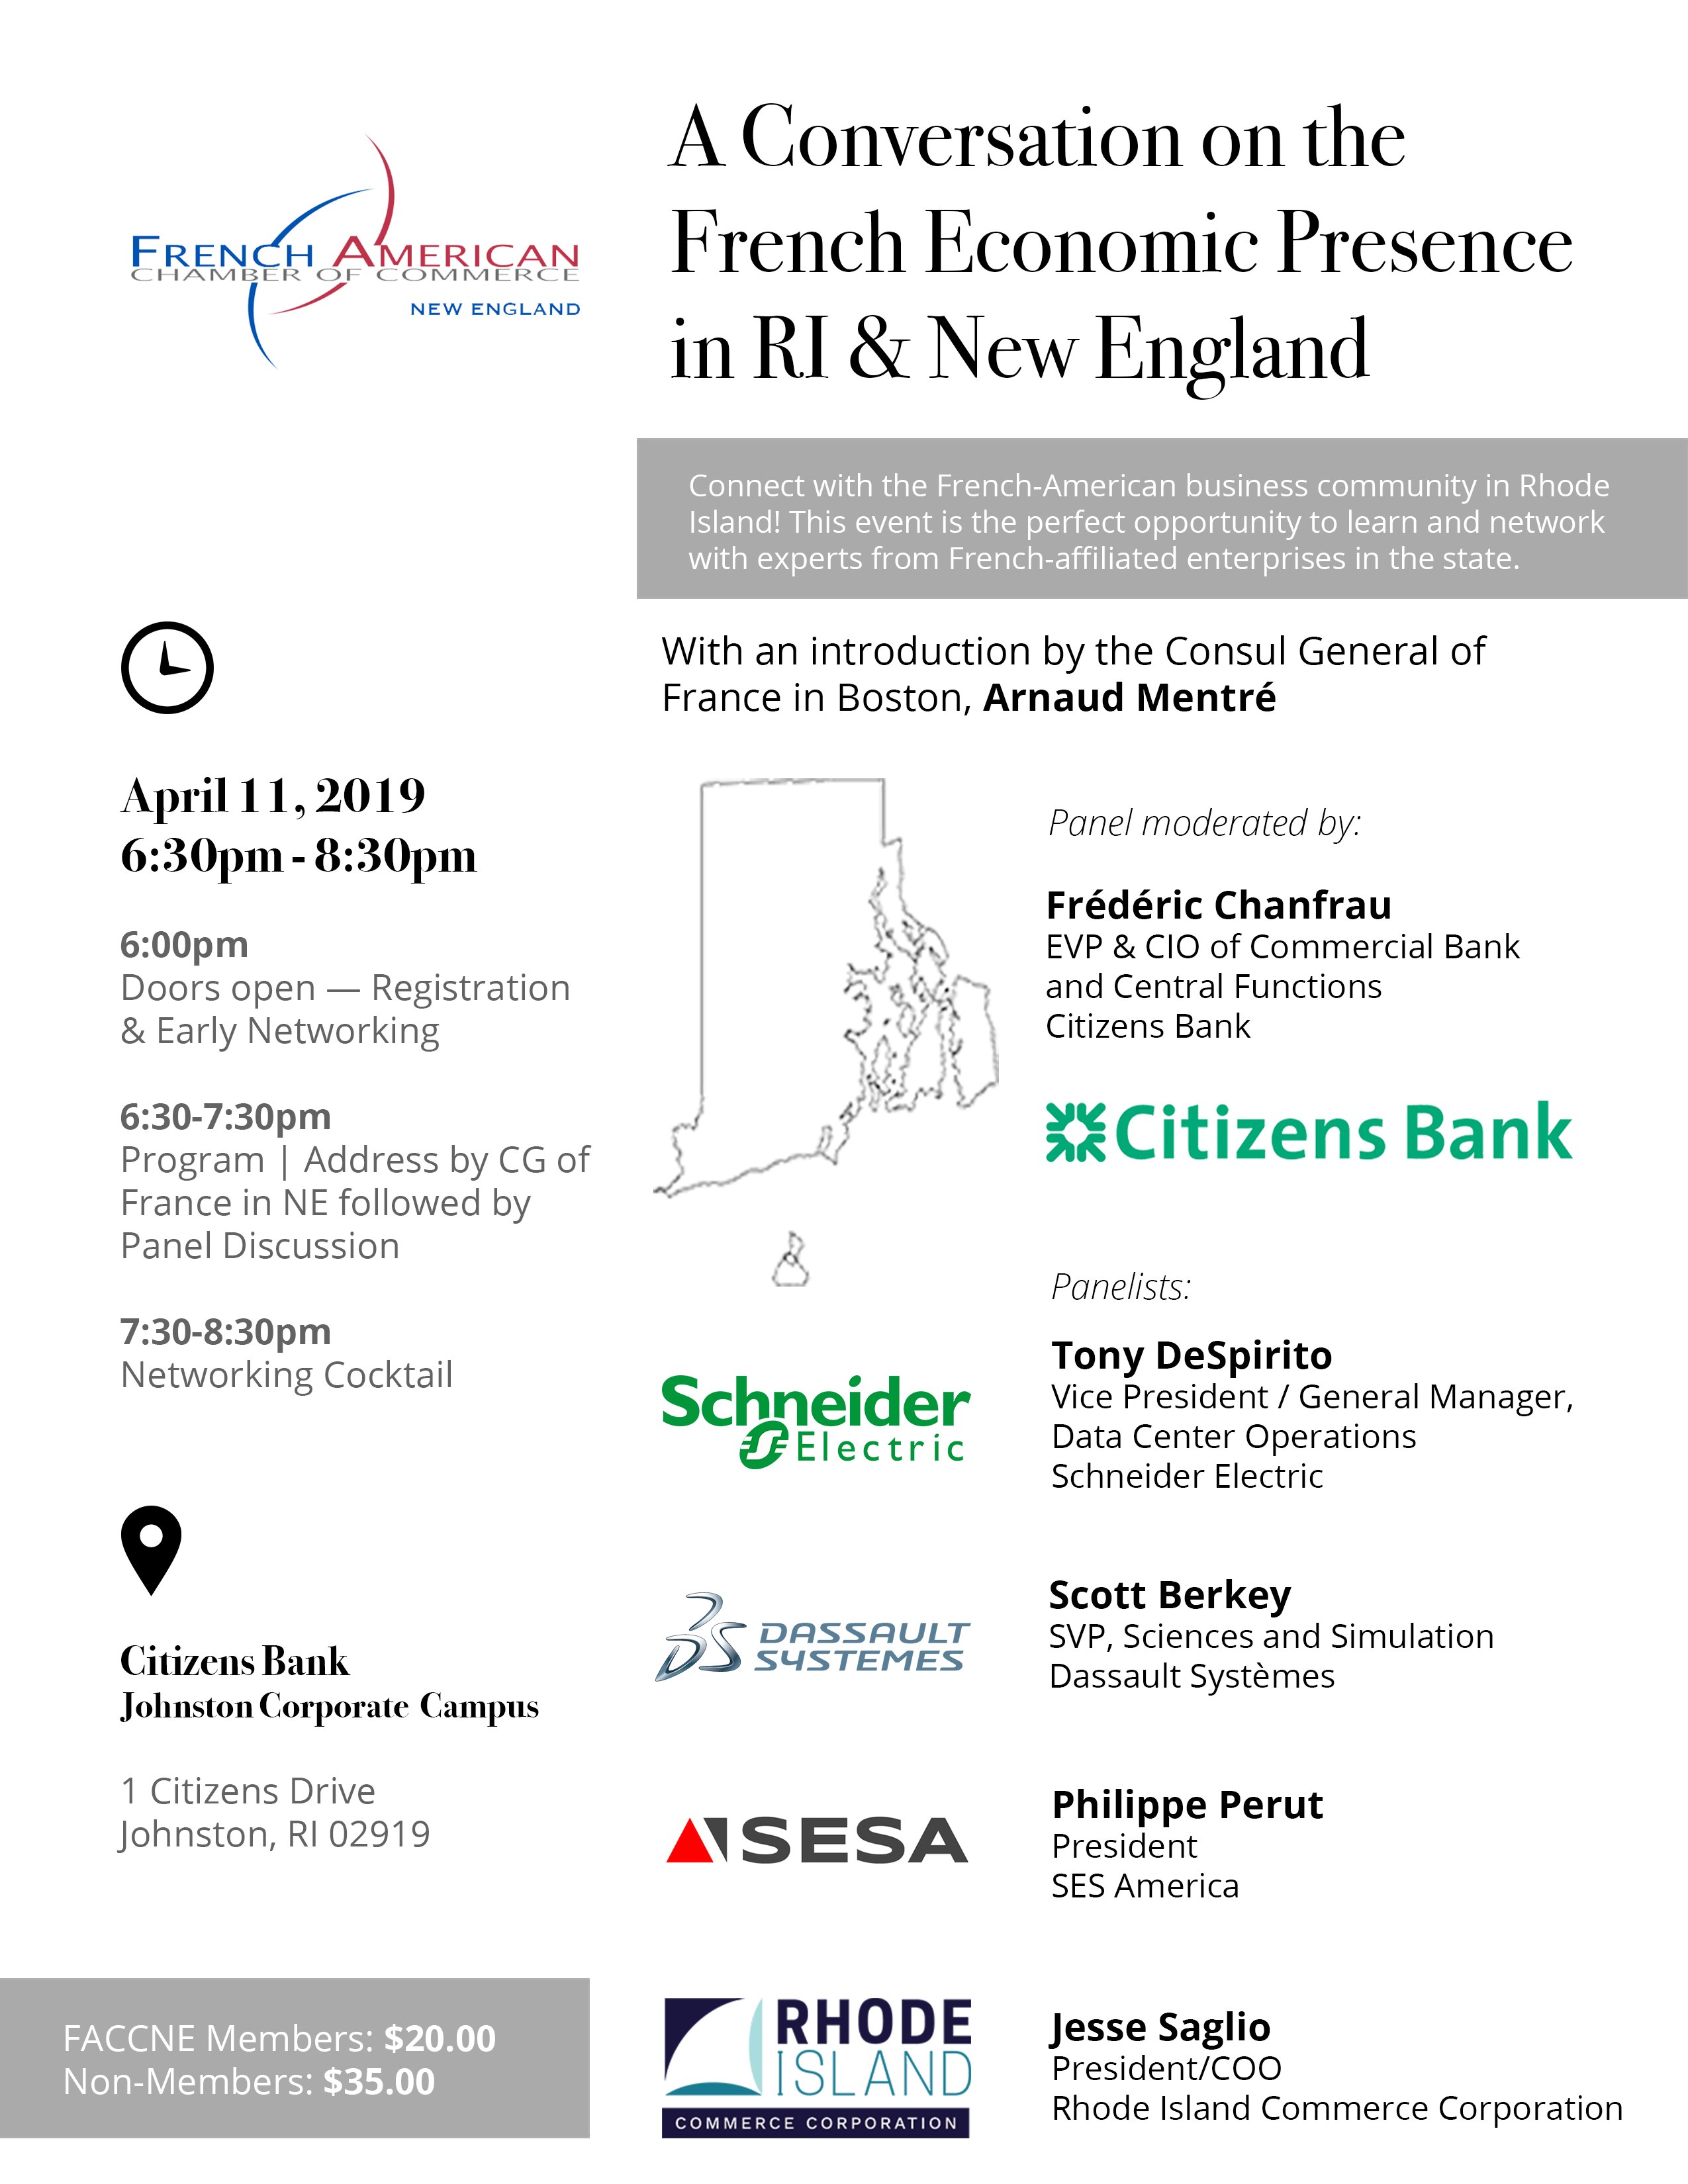 A Conversation on the French Economic Presence in RI & New England